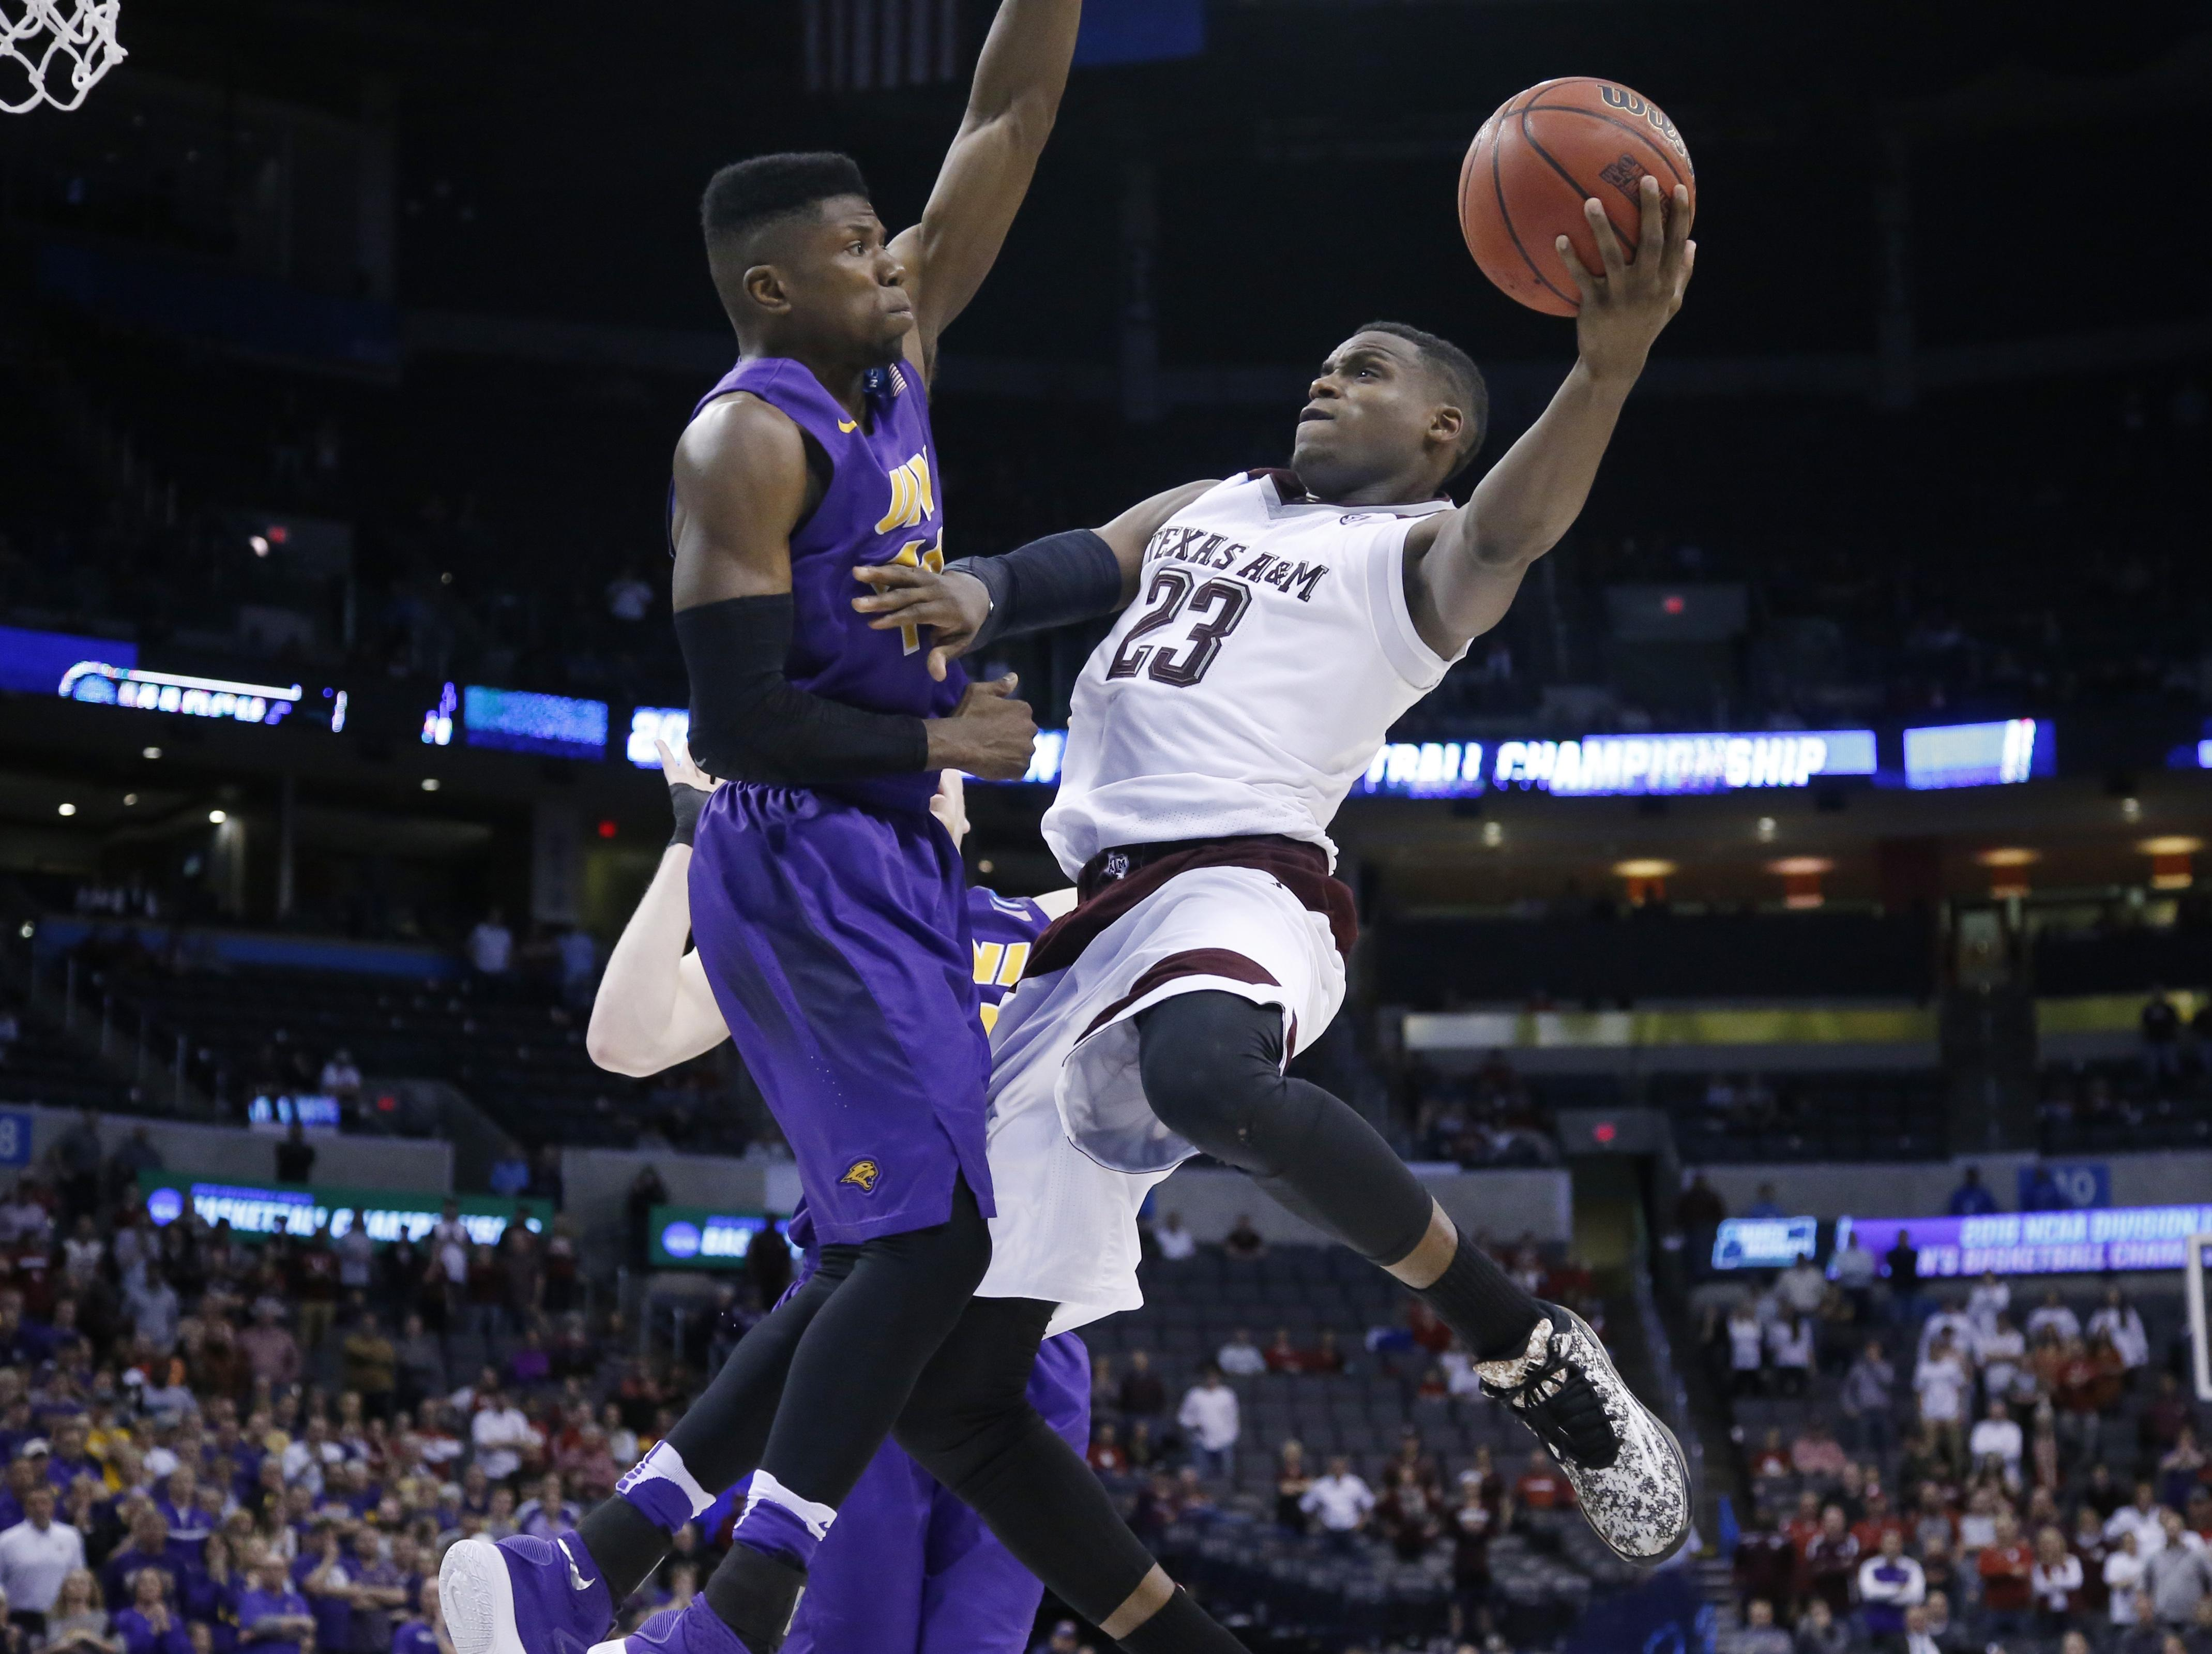 Texas A&M uses furious comeback to down Northern Iowa ...